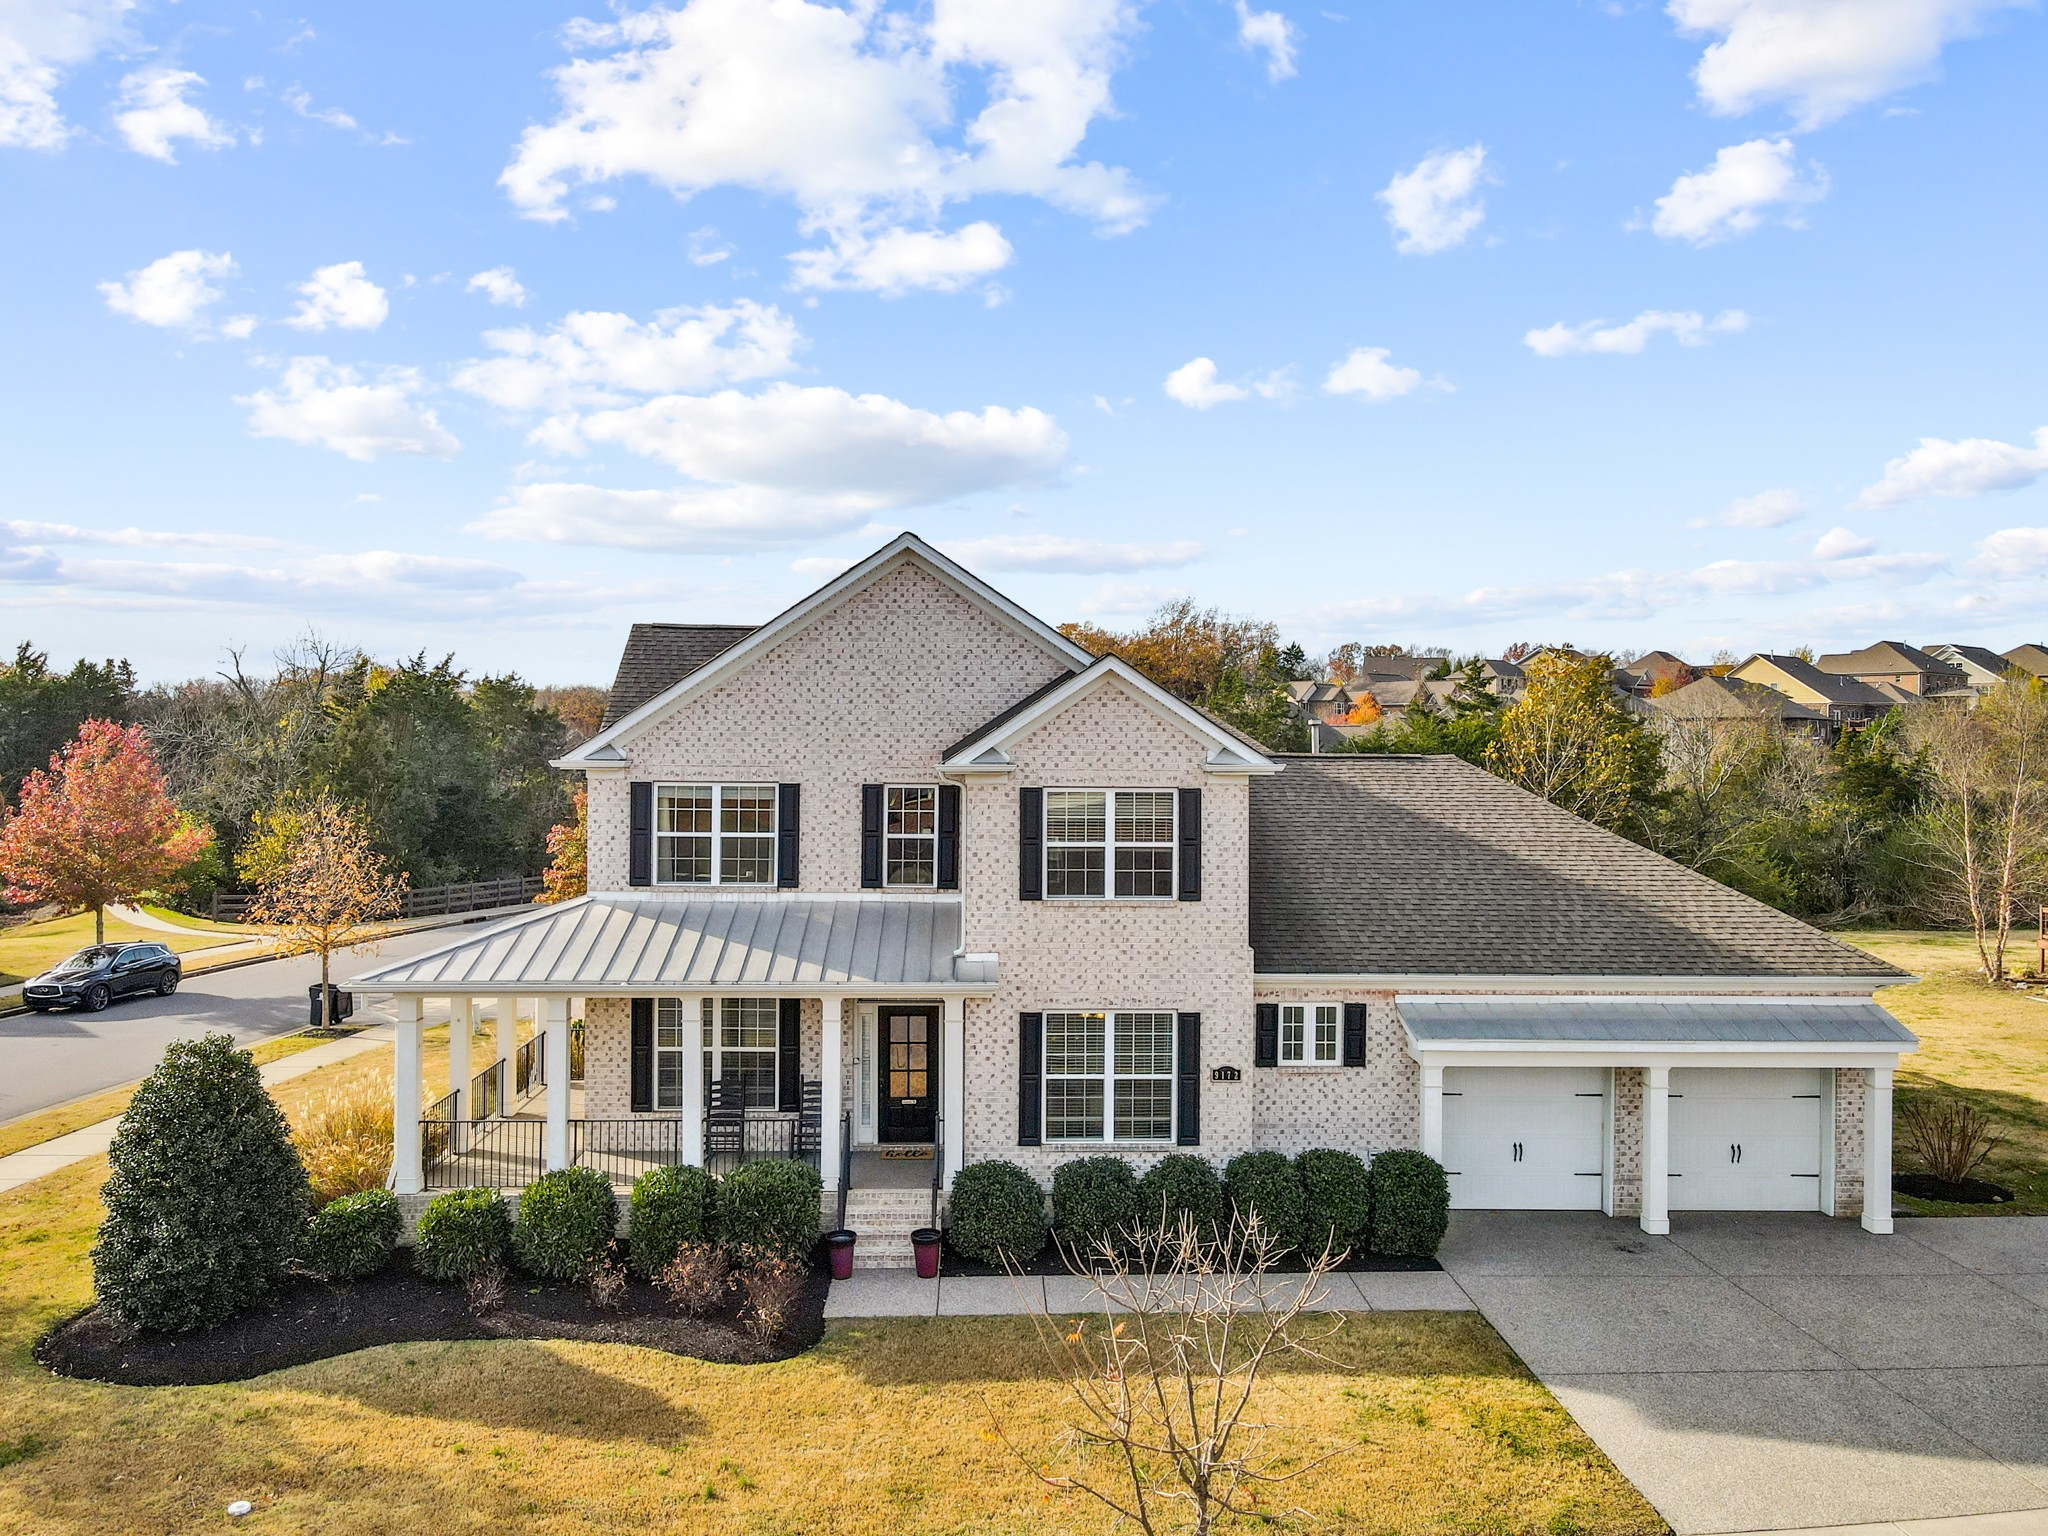 Williamson County! This beautiful corner lot boasts 5 bedrooms, open floor plan, eat in kitchen + formal dining! Perfect room for office to WFH! 2 fireplaces, owners suite on main! Large lot, wrap around porch, new paint and carpet throughout! Great location in Burkitt Place!